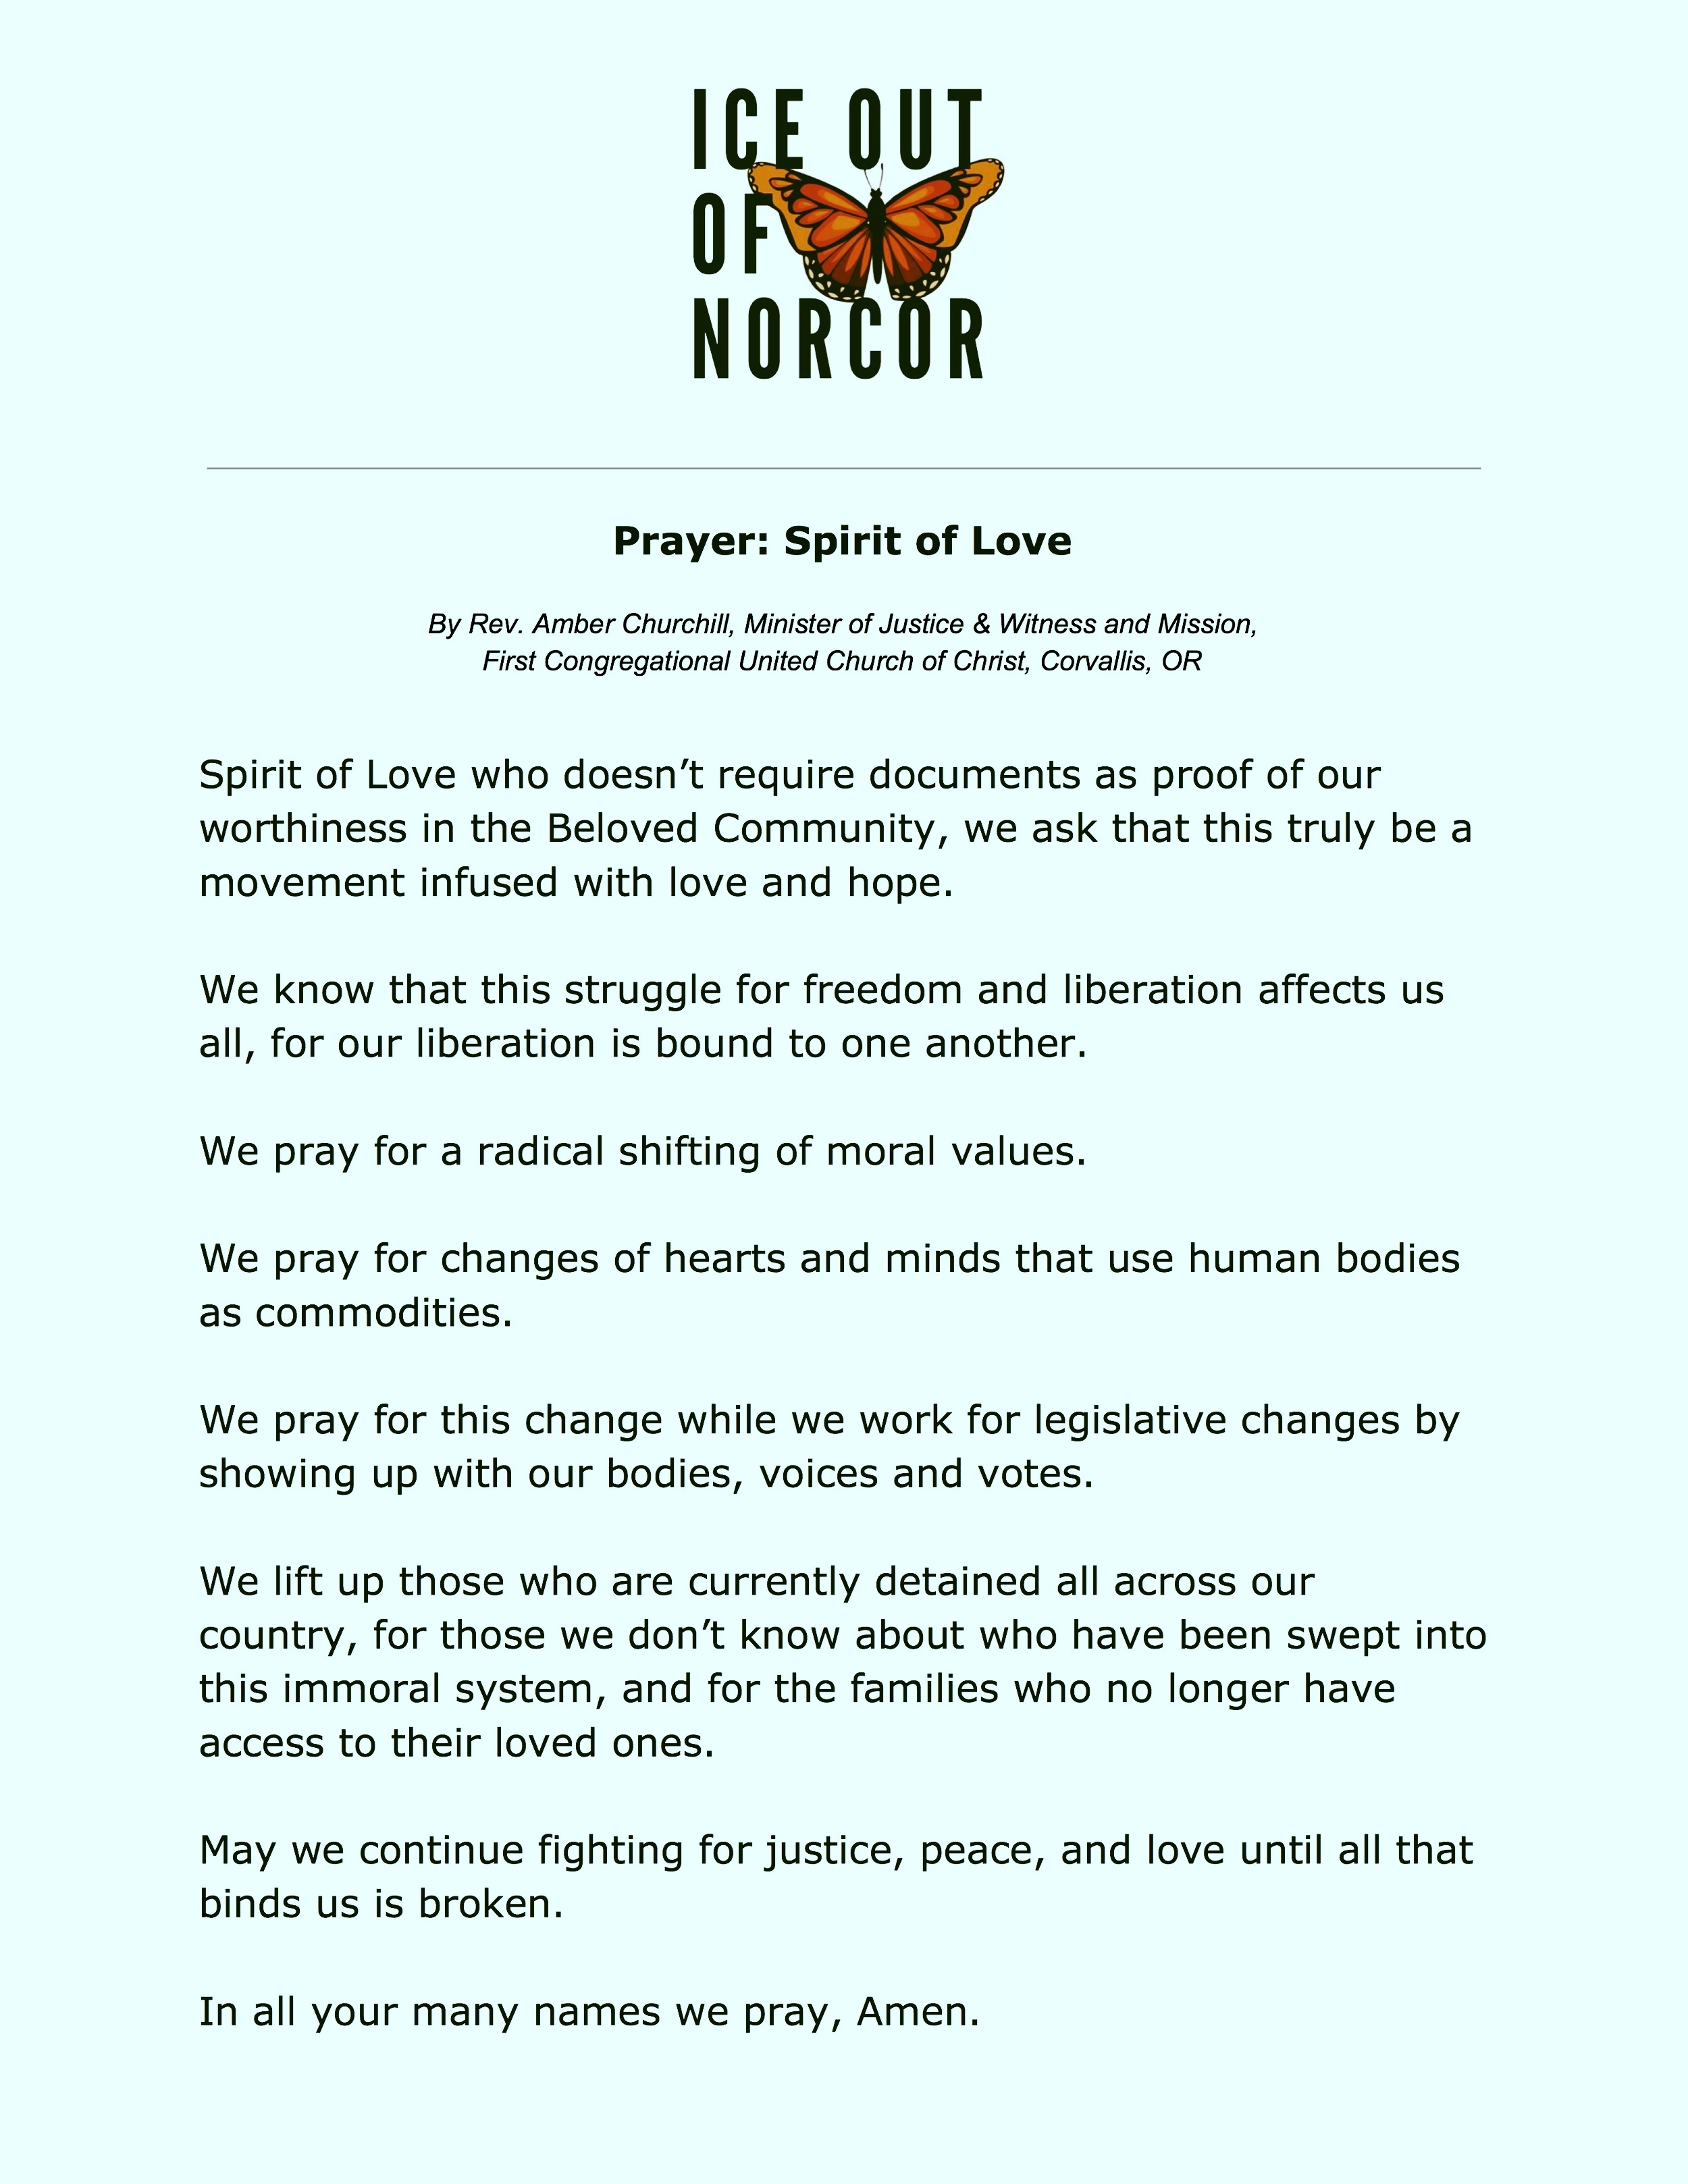 Prayer: Spirit of Love